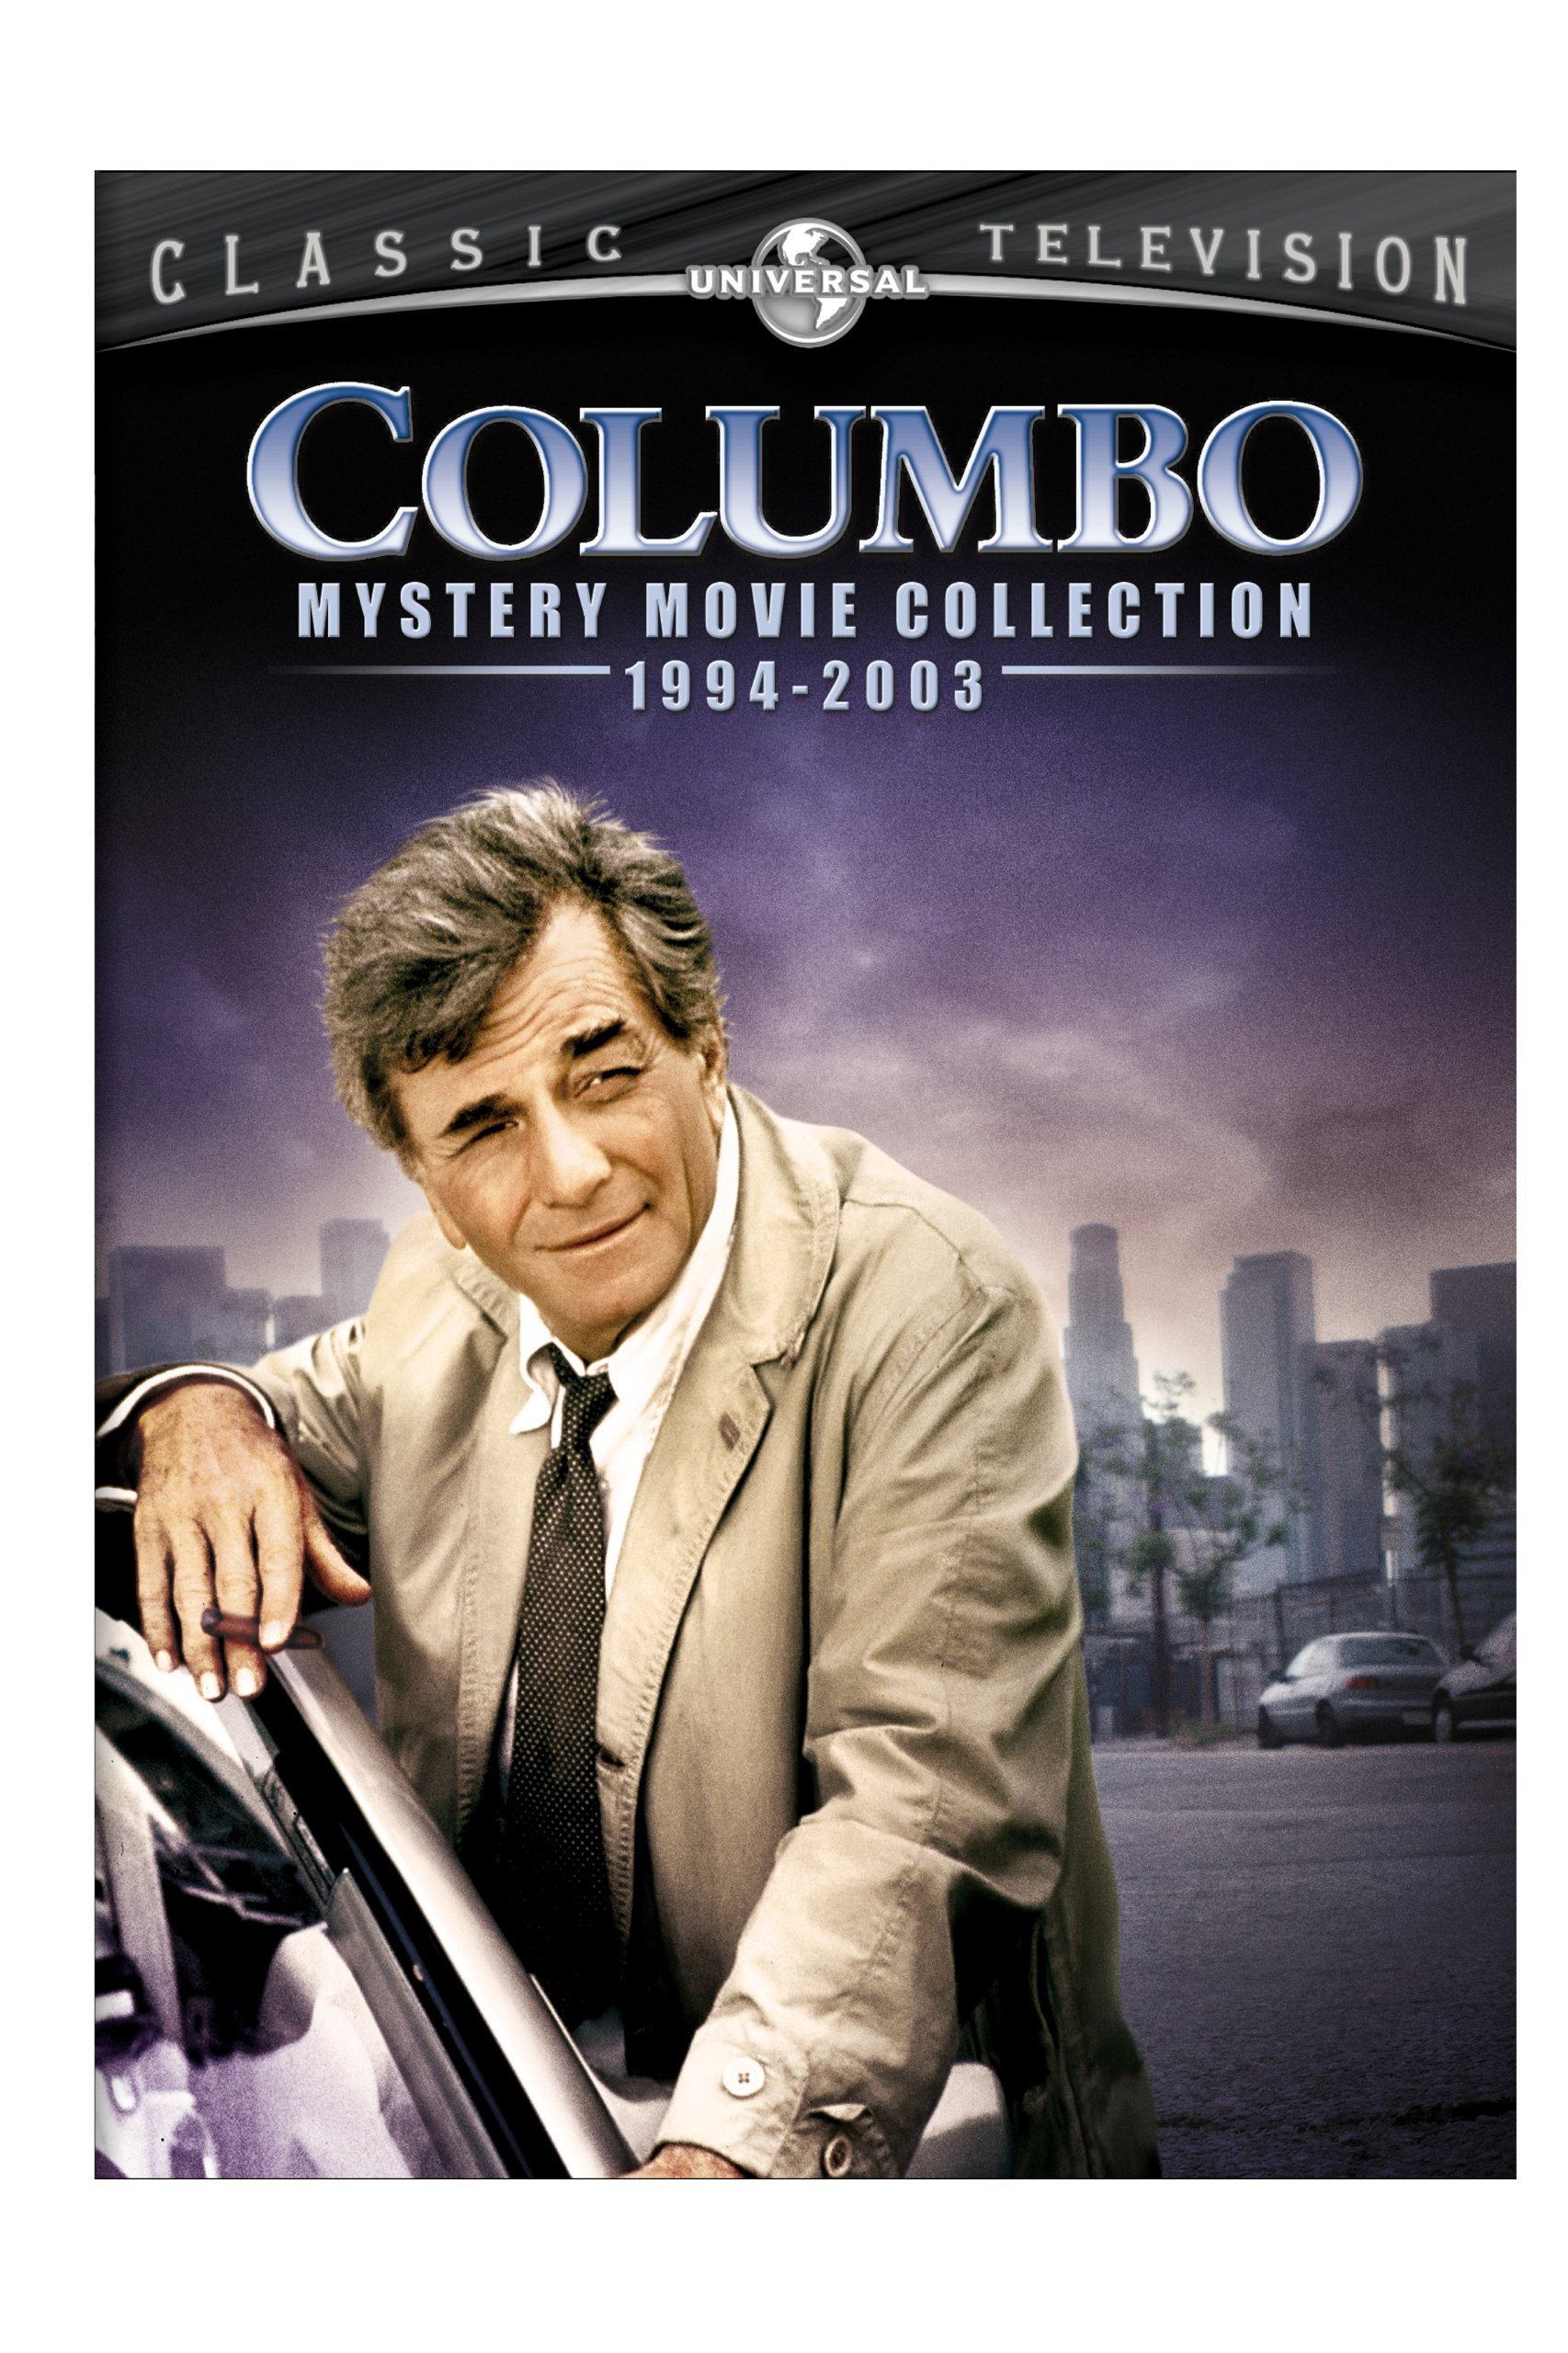 Columbo: Mystery Movie Collection 1994-2003